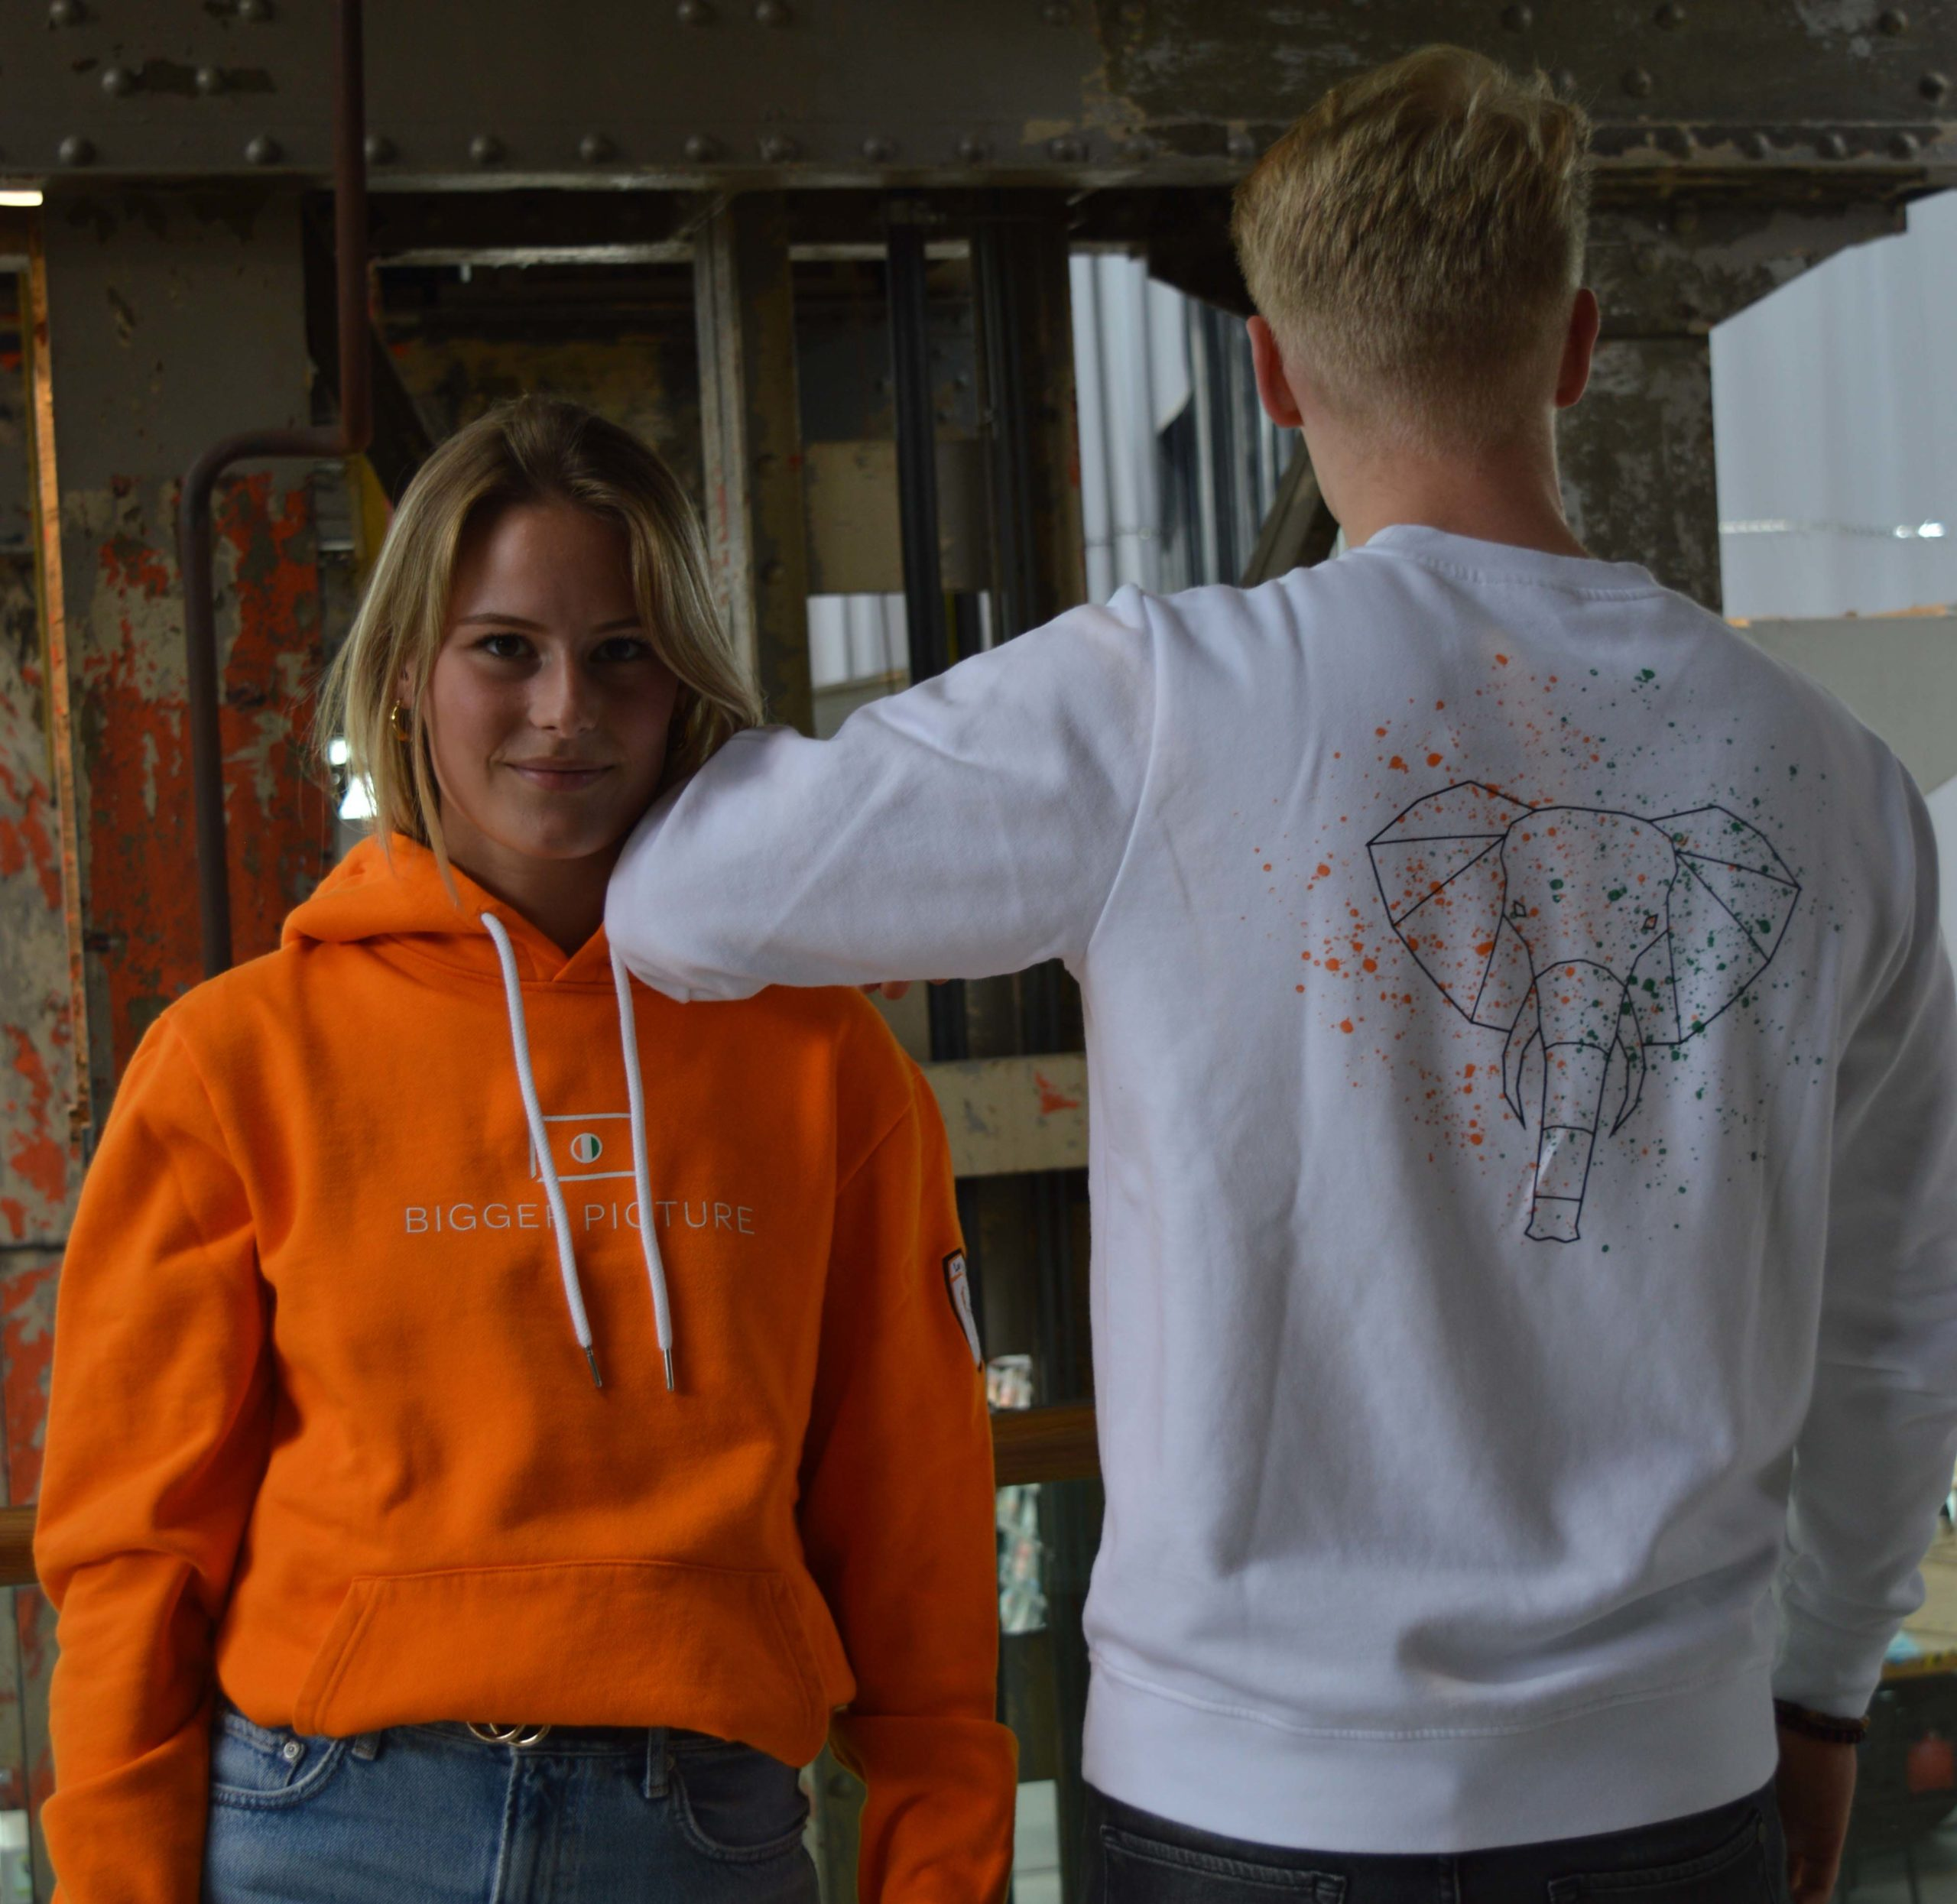 Pleun and Freek wearing the original orange hoodie and the energetic elephant sweater in the lochal in Tilburg, The Netherlands for the first photoshoot from slow-fashion brand Bigger Picture Clothing.